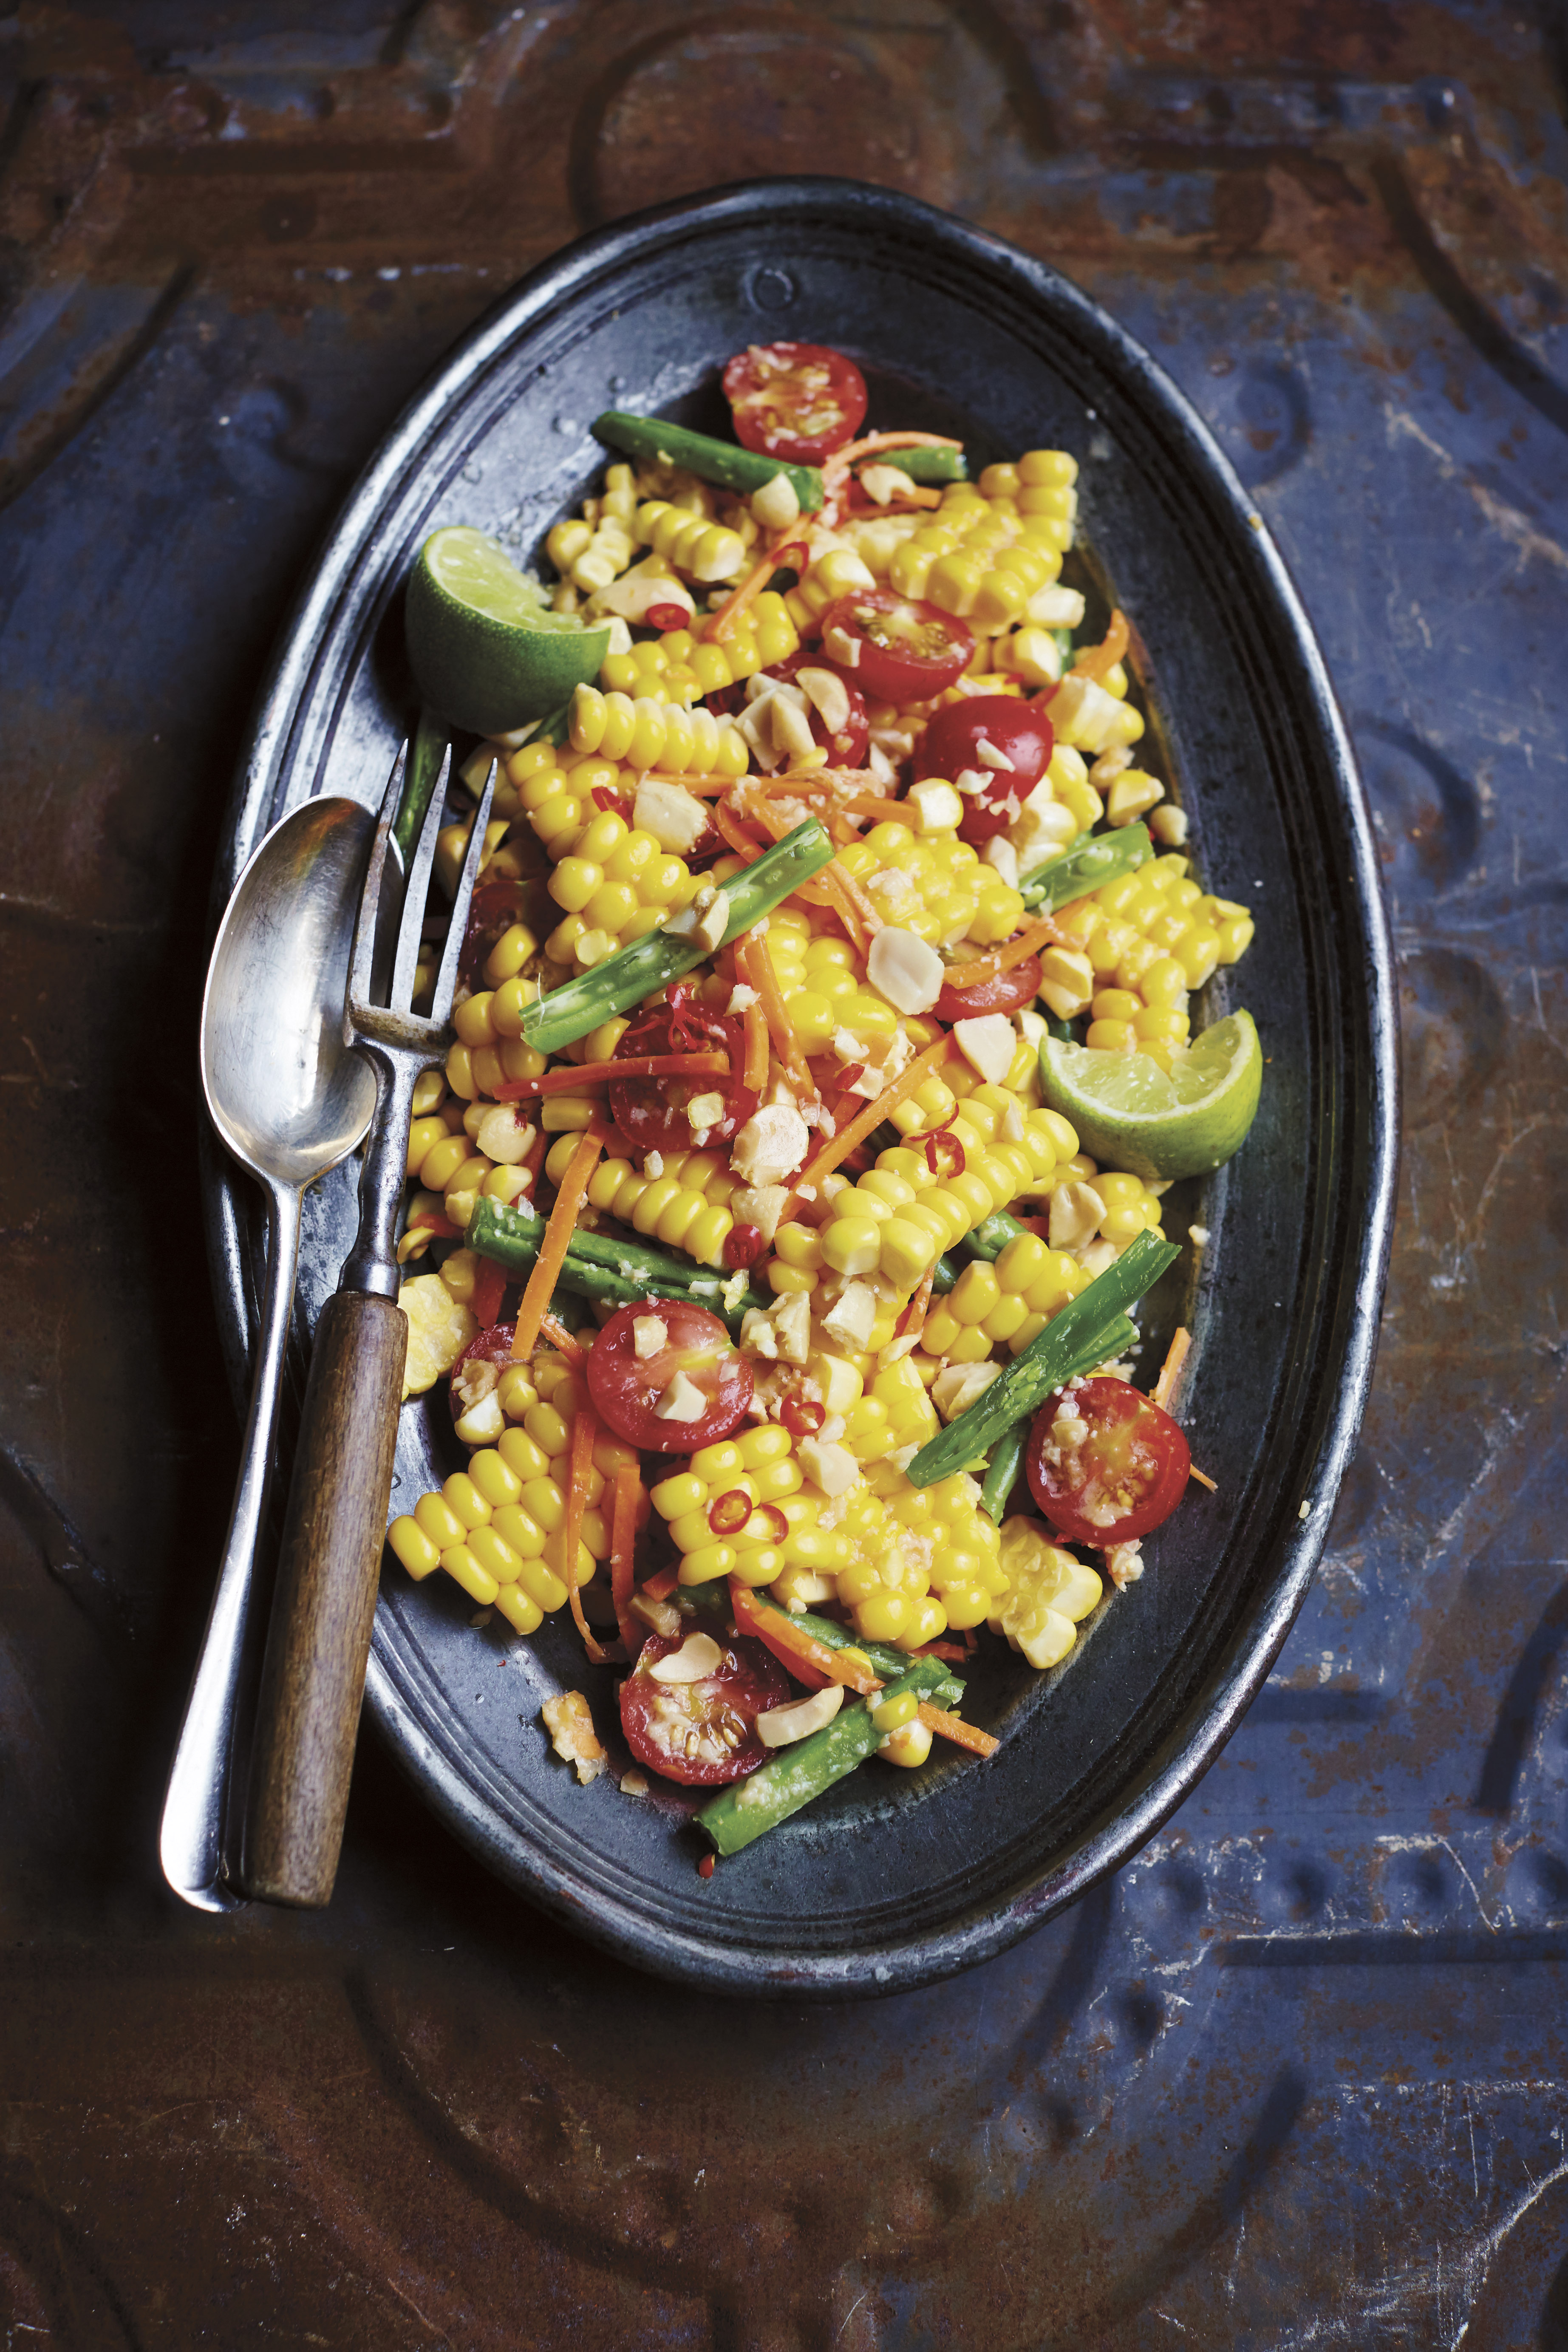 Recipe: A Sweet and Spicy Corn Salad